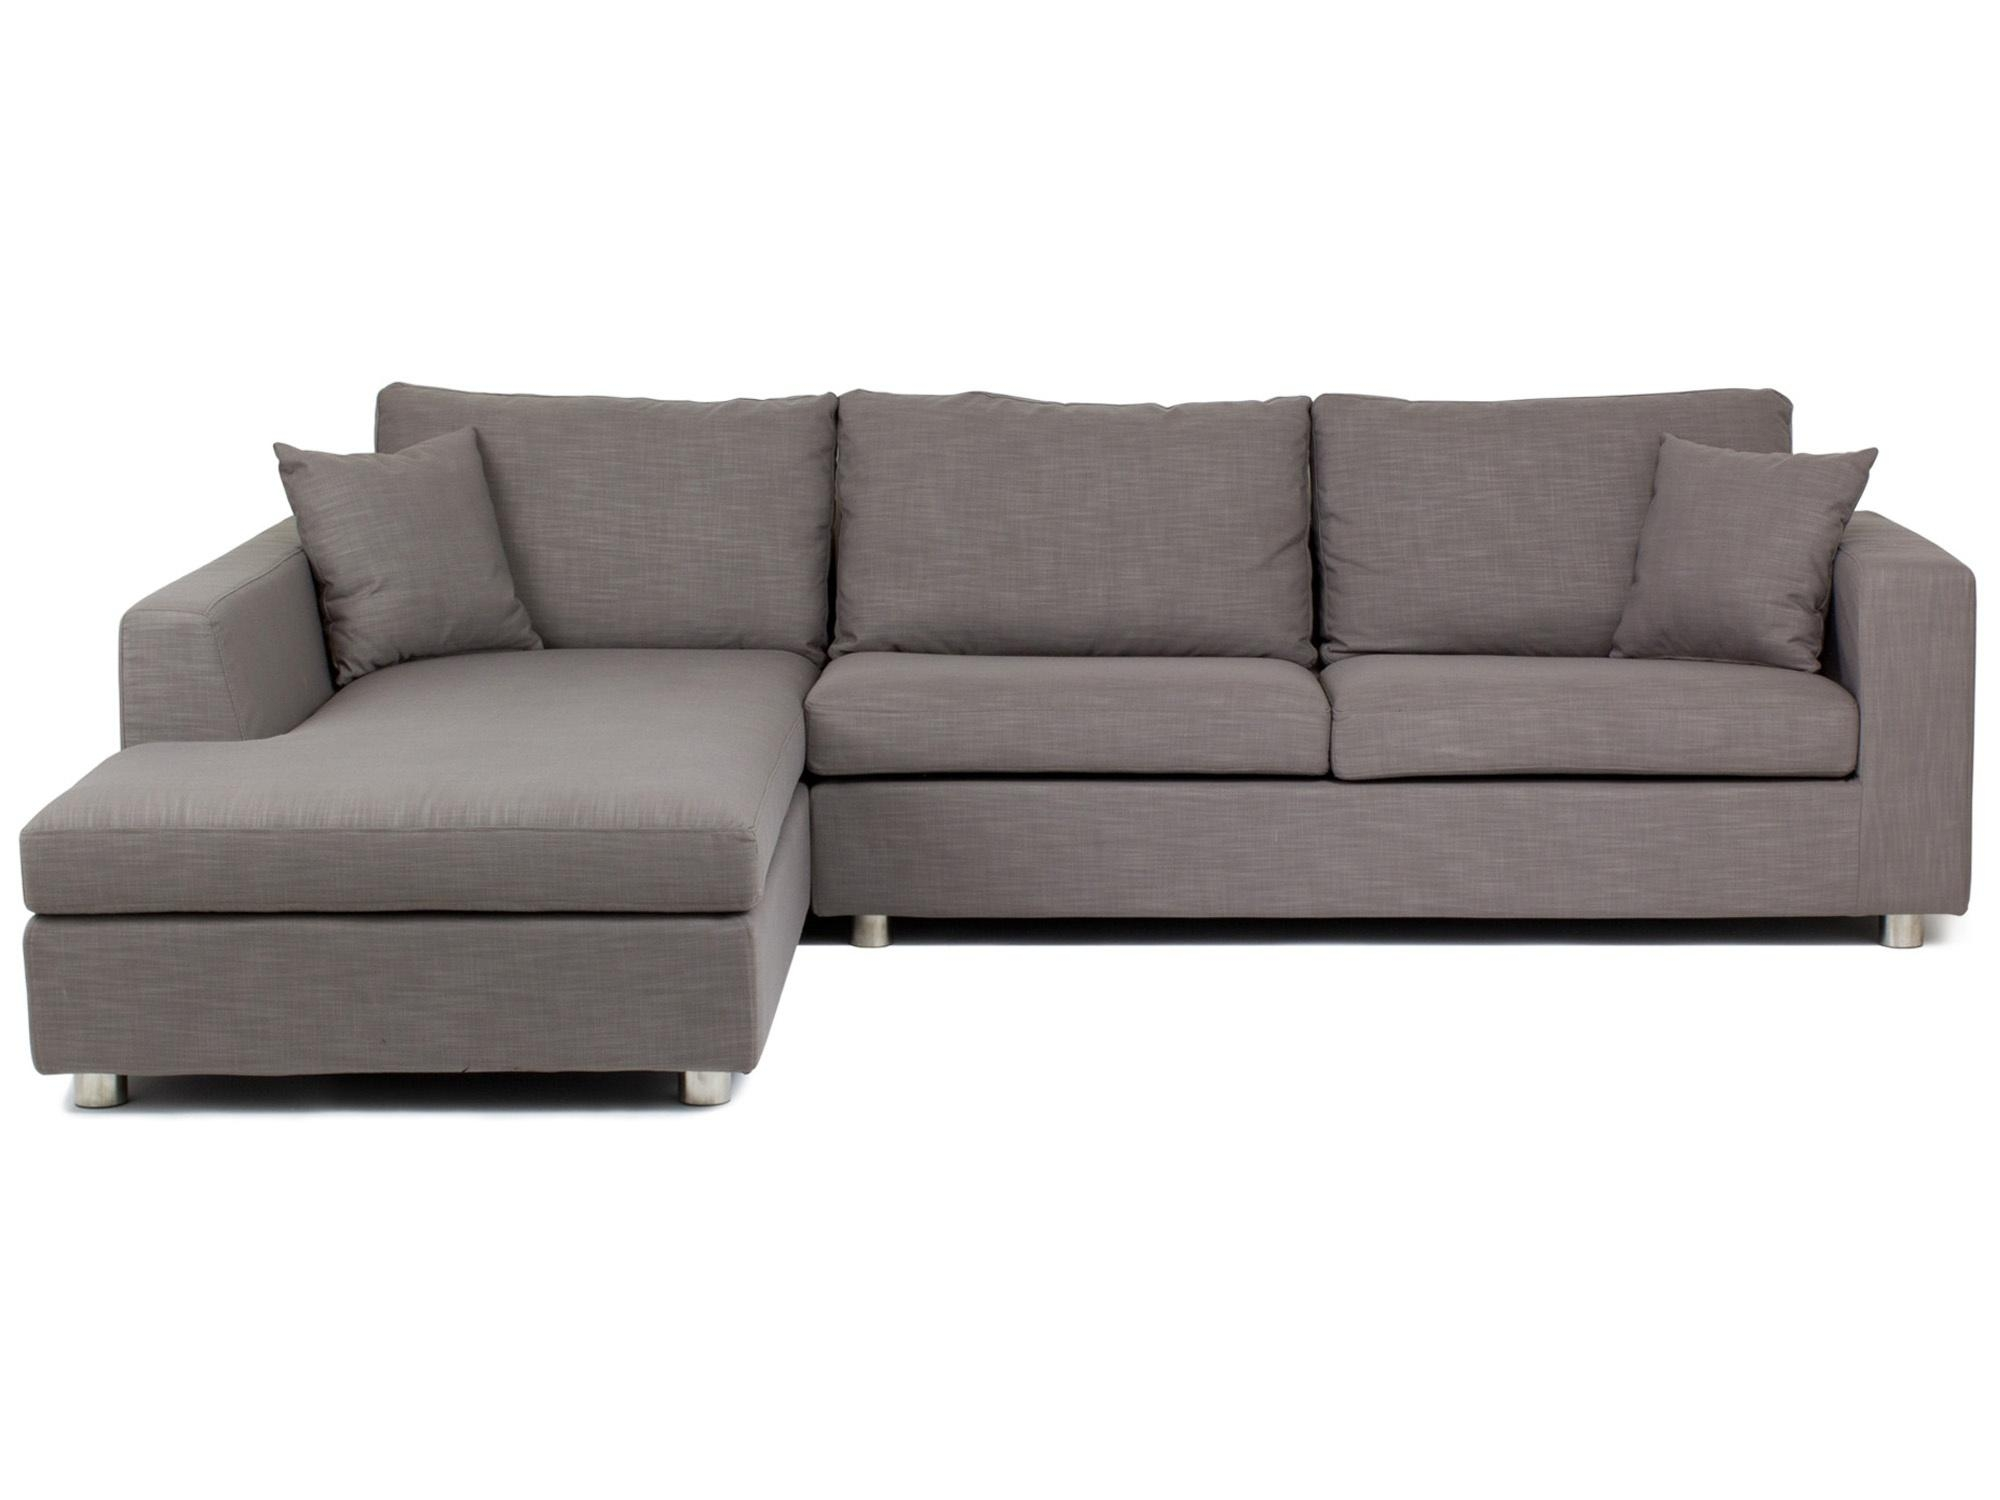 Chaise Sofa Bed Lounge | Tehranmix Decoration Throughout Chaise Sofa Beds With Storage (View 3 of 20)